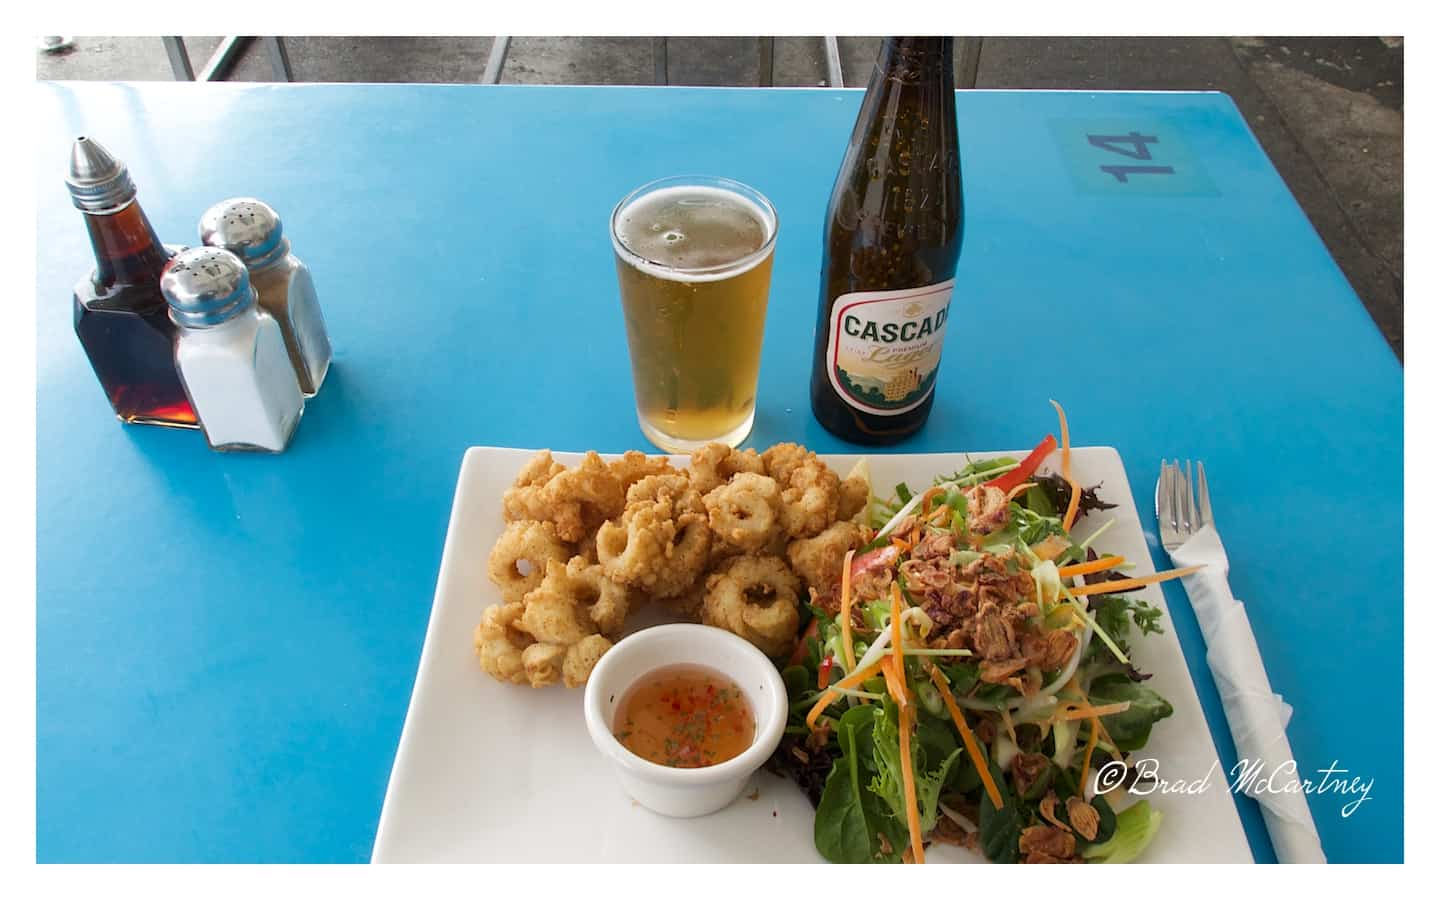 Salt and Pepper Squid at one of the many dockside eateries